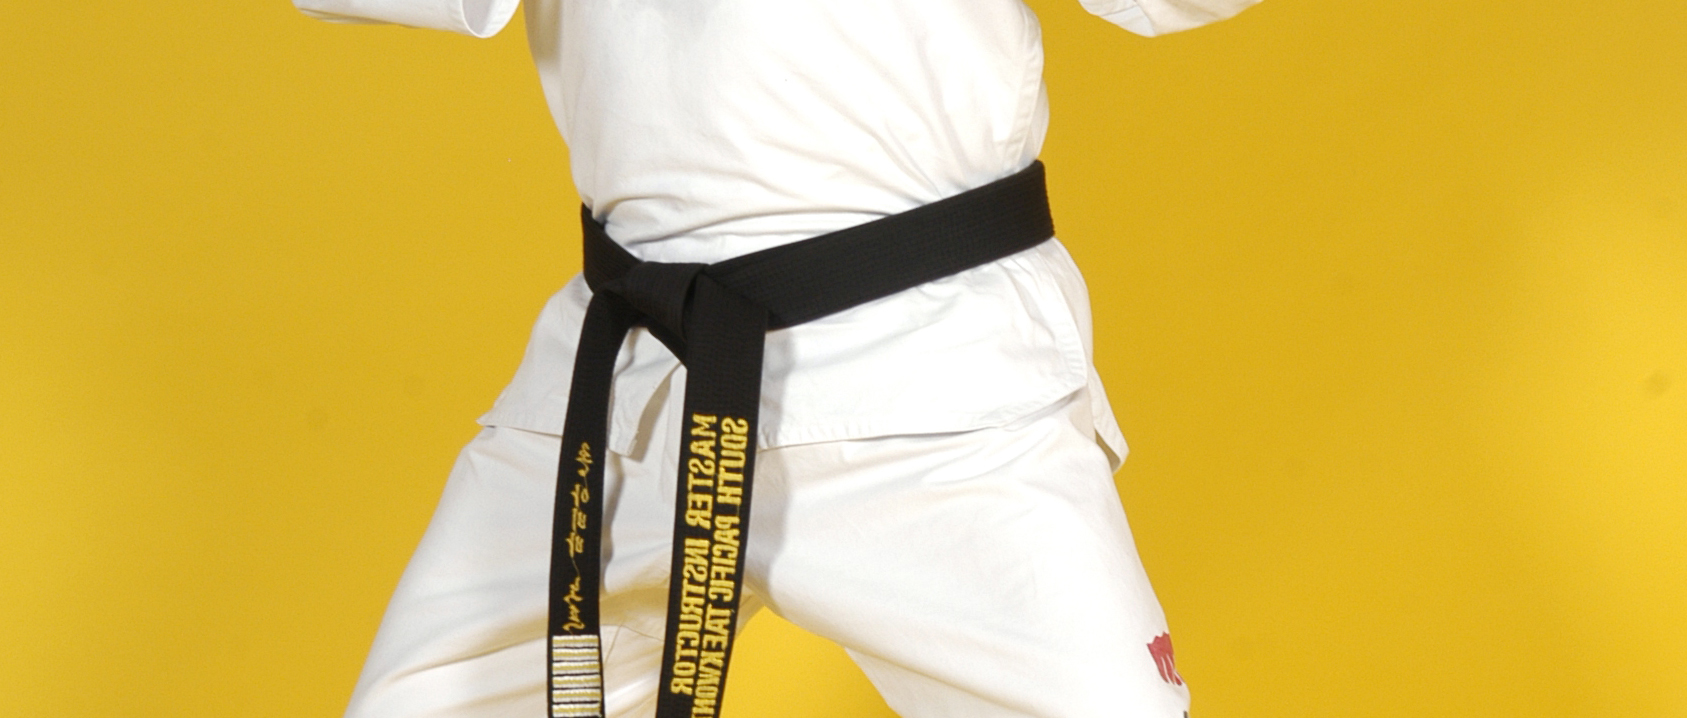 Townsville, Australia, Australian, au, nz, New Zealand, itf, wtf, authentic, south, pacific, south pacific, Brisbane, fitness, weight, lose weight, Karate, judo, kung fu, chon-ji, dan-gun, won-hyo, joong-gun, toi-gye, hwa-rang, Chung-mu,